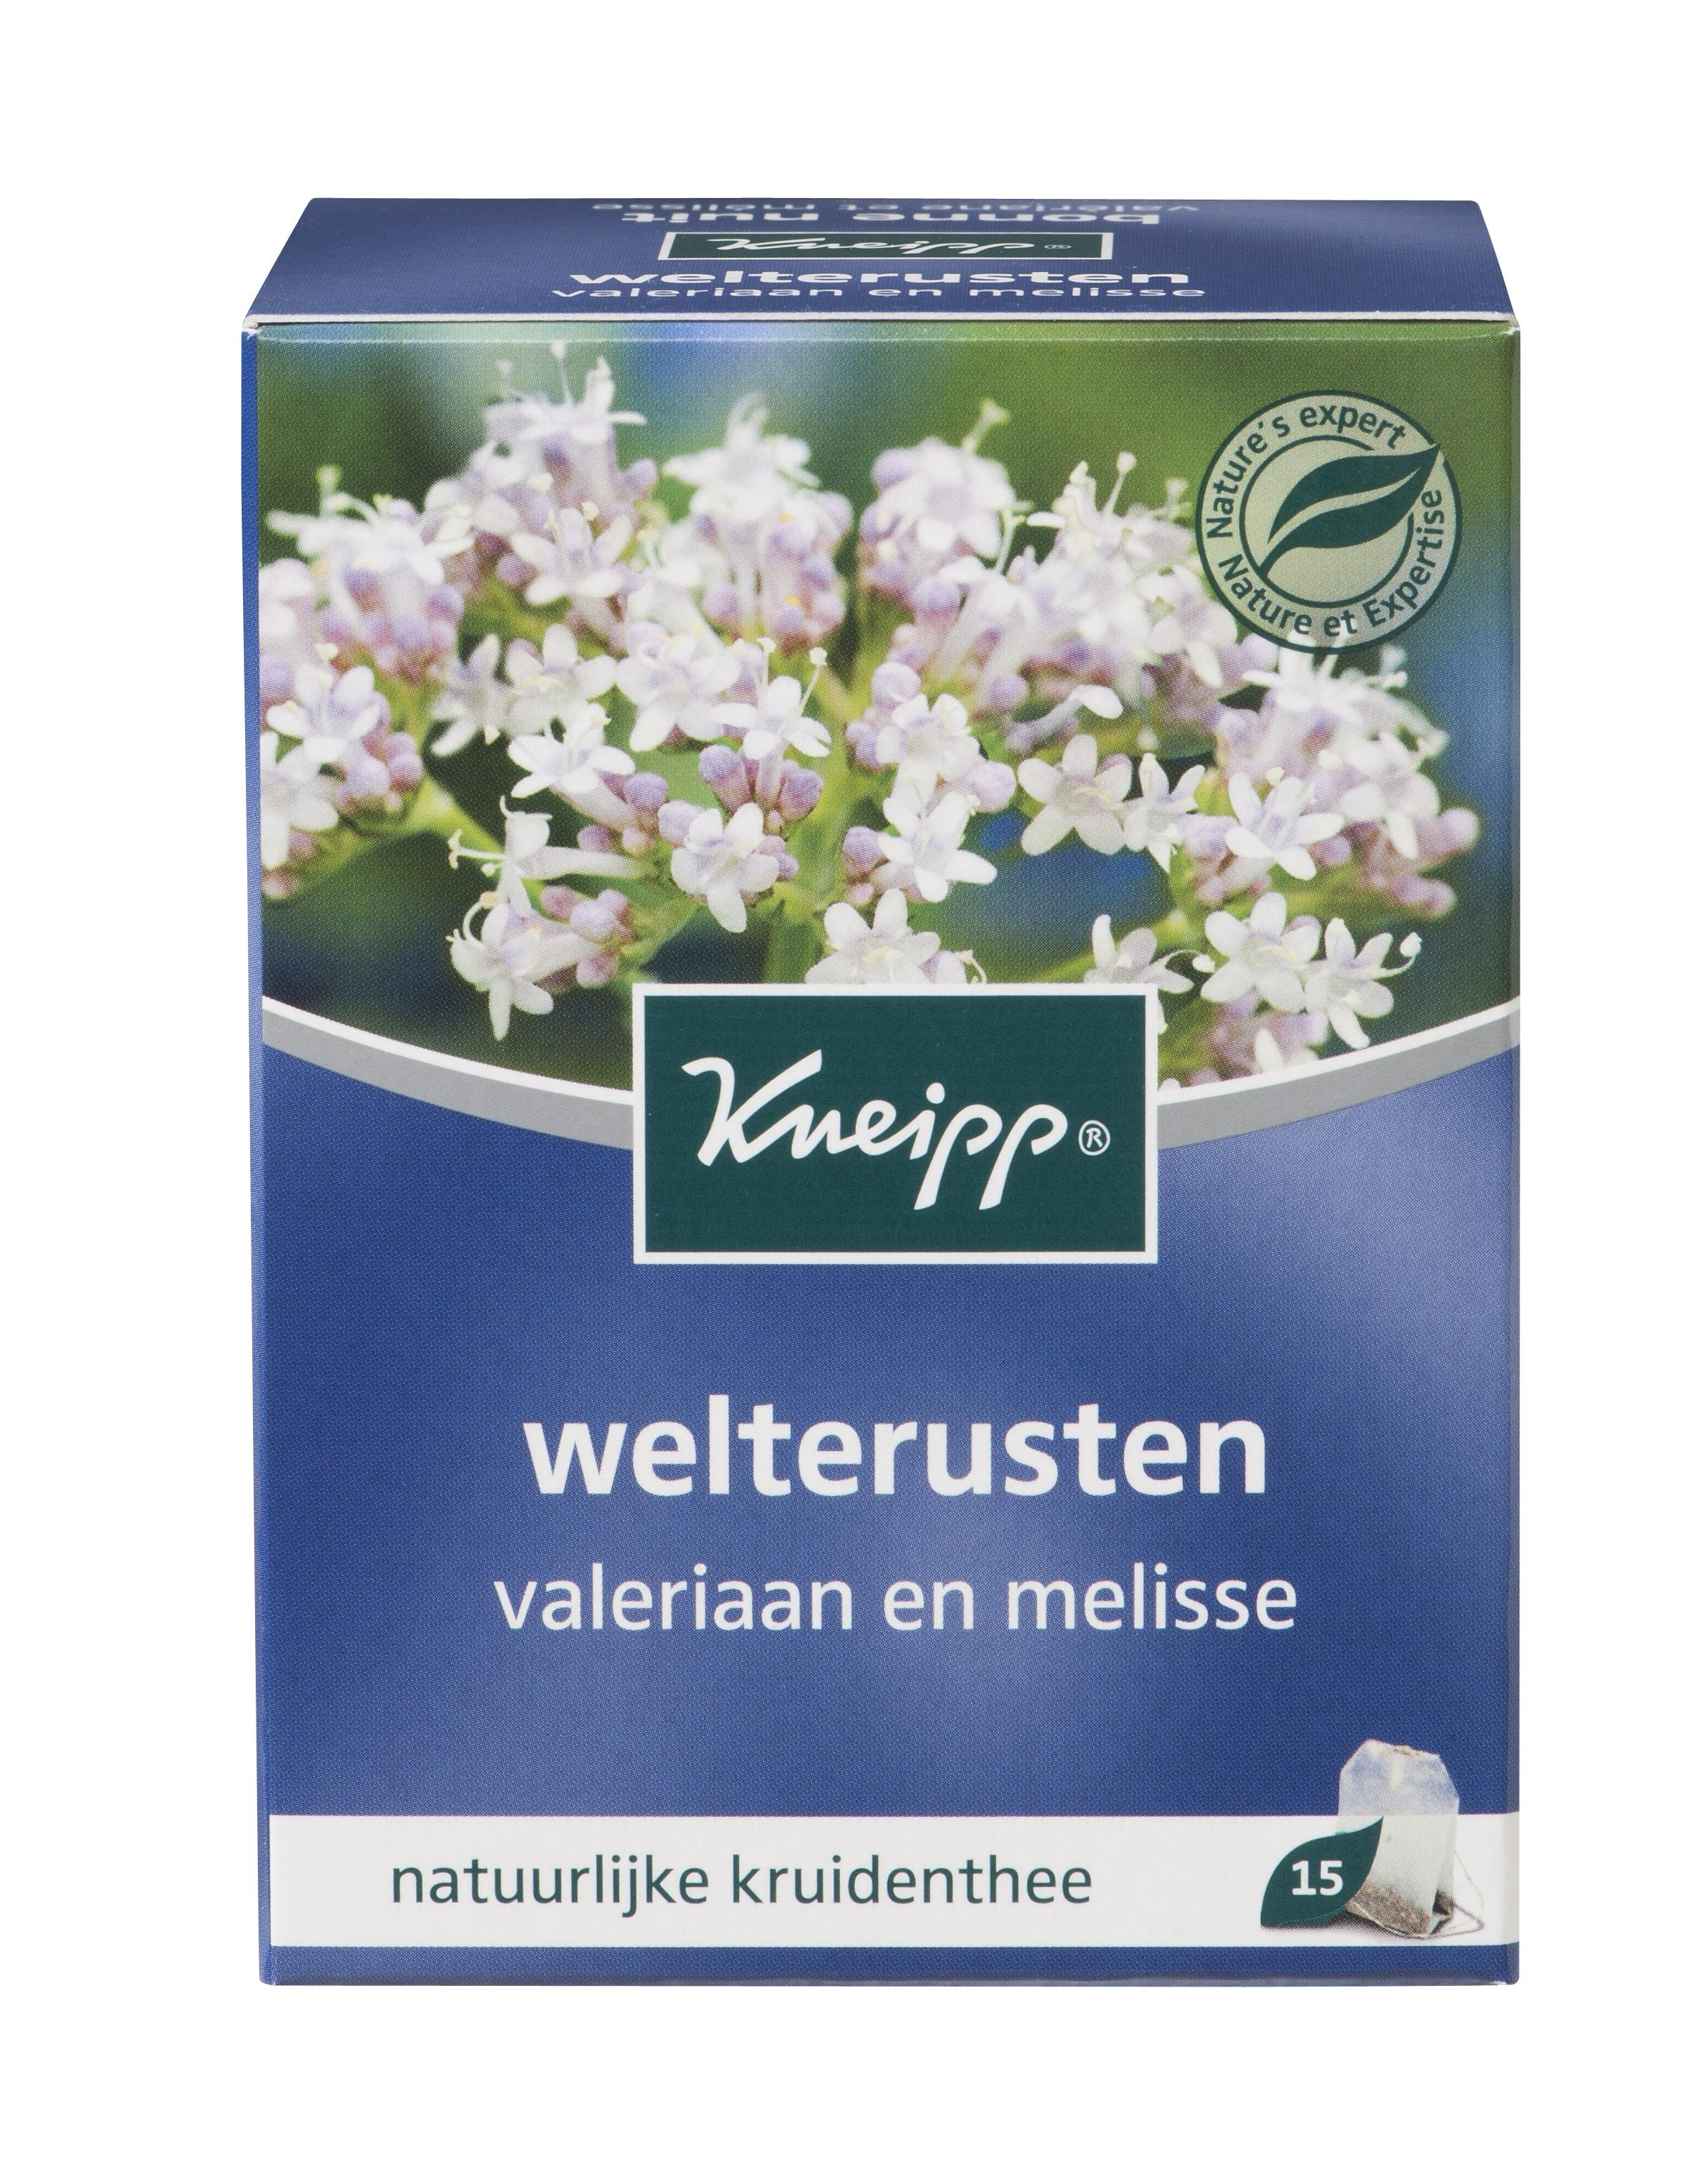 What's on mama's mind kneipp thee